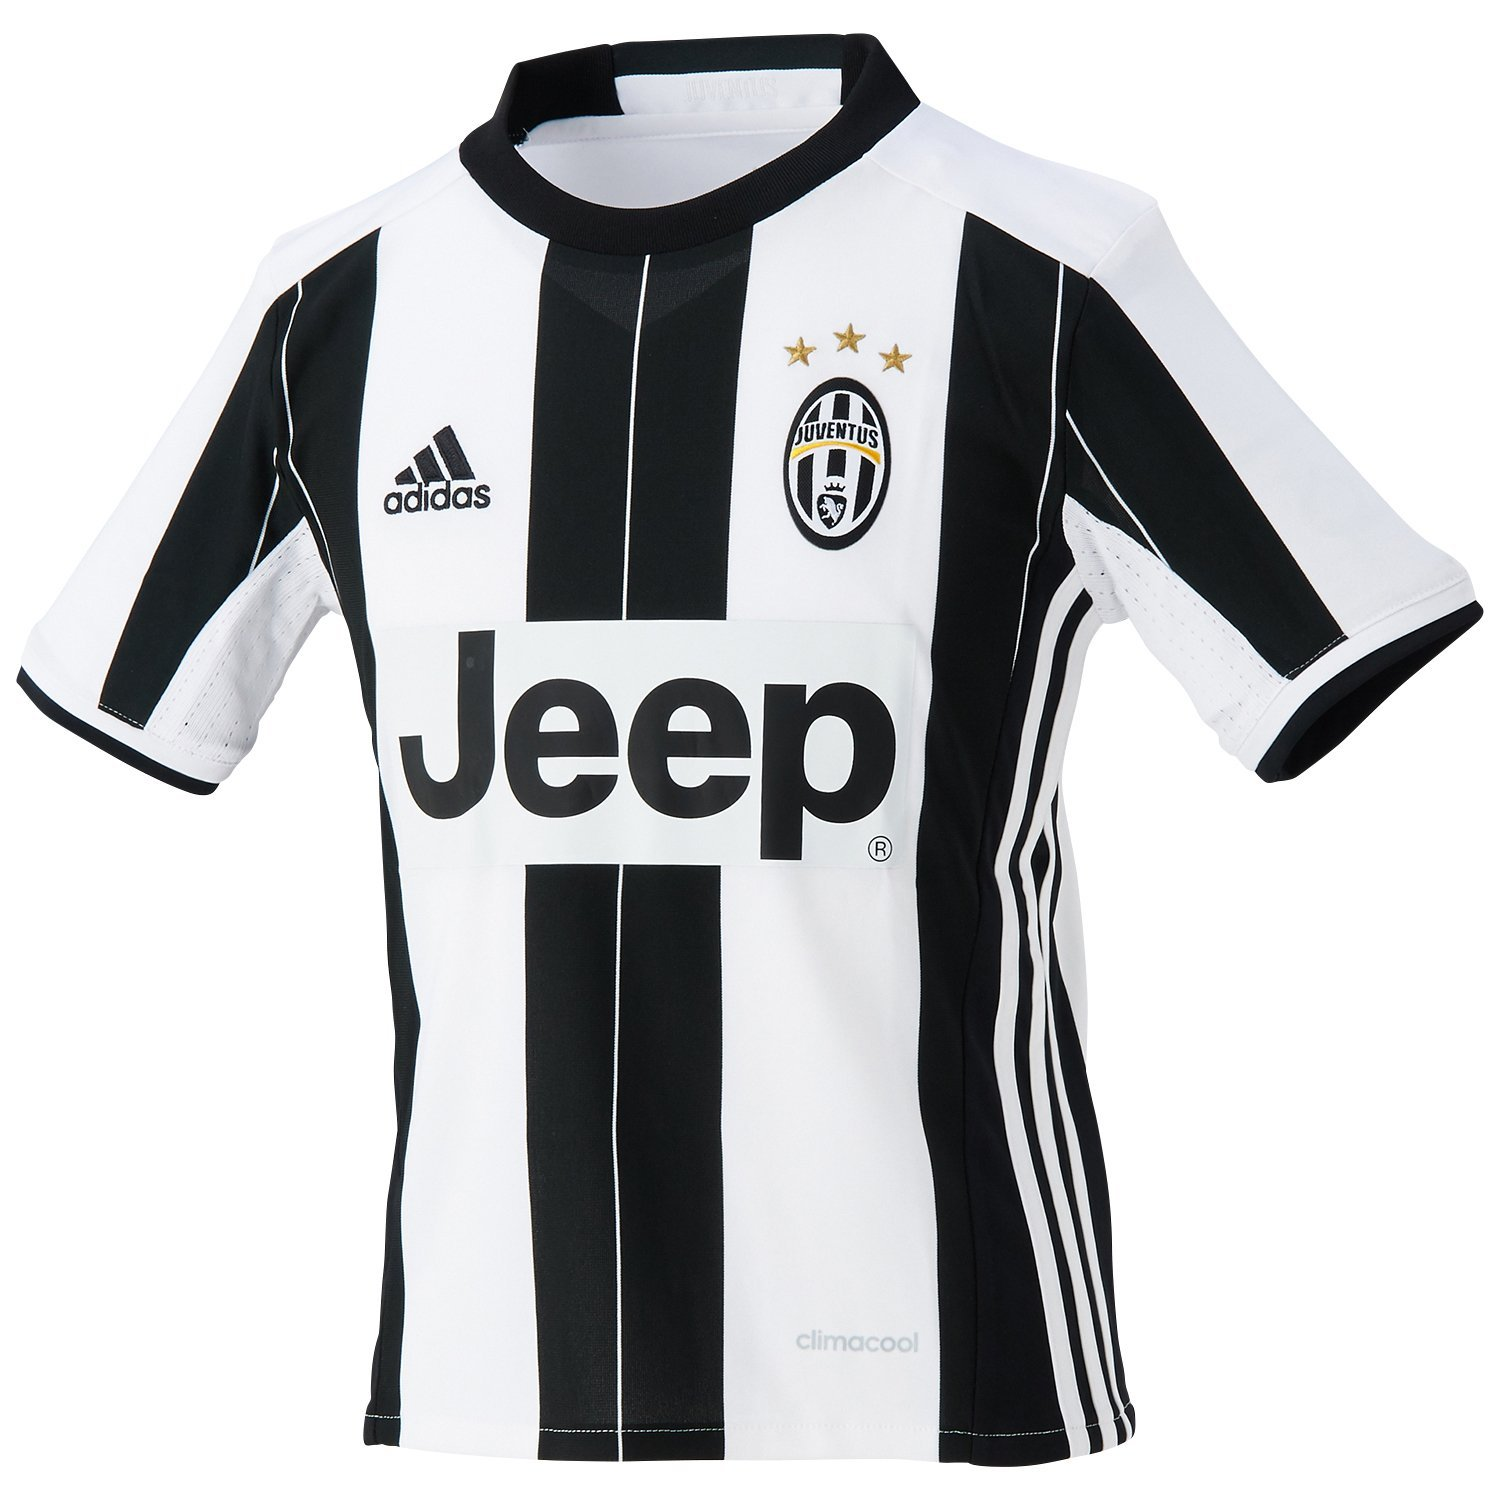 098d90286 adidas JUVE H JSY Y - 1st Football kit T-Shirt for of Juventus FC 2015 2016  for Boys  Amazon.co.uk  Sports   Outdoors